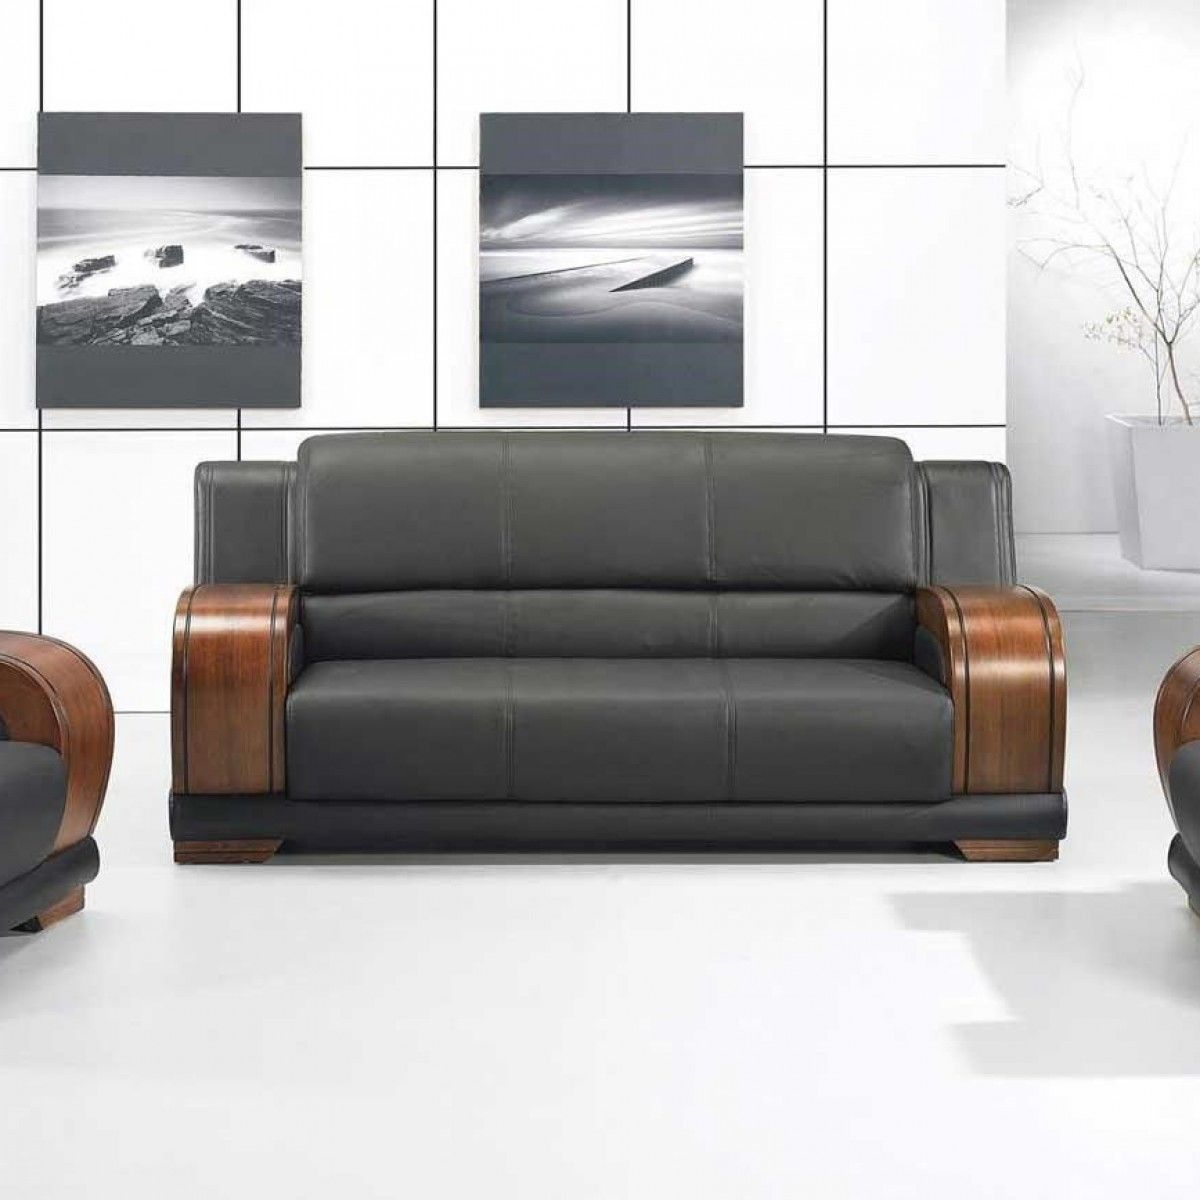 modern sofa bed price inspiration-Lovely sofa Bed Price Construction